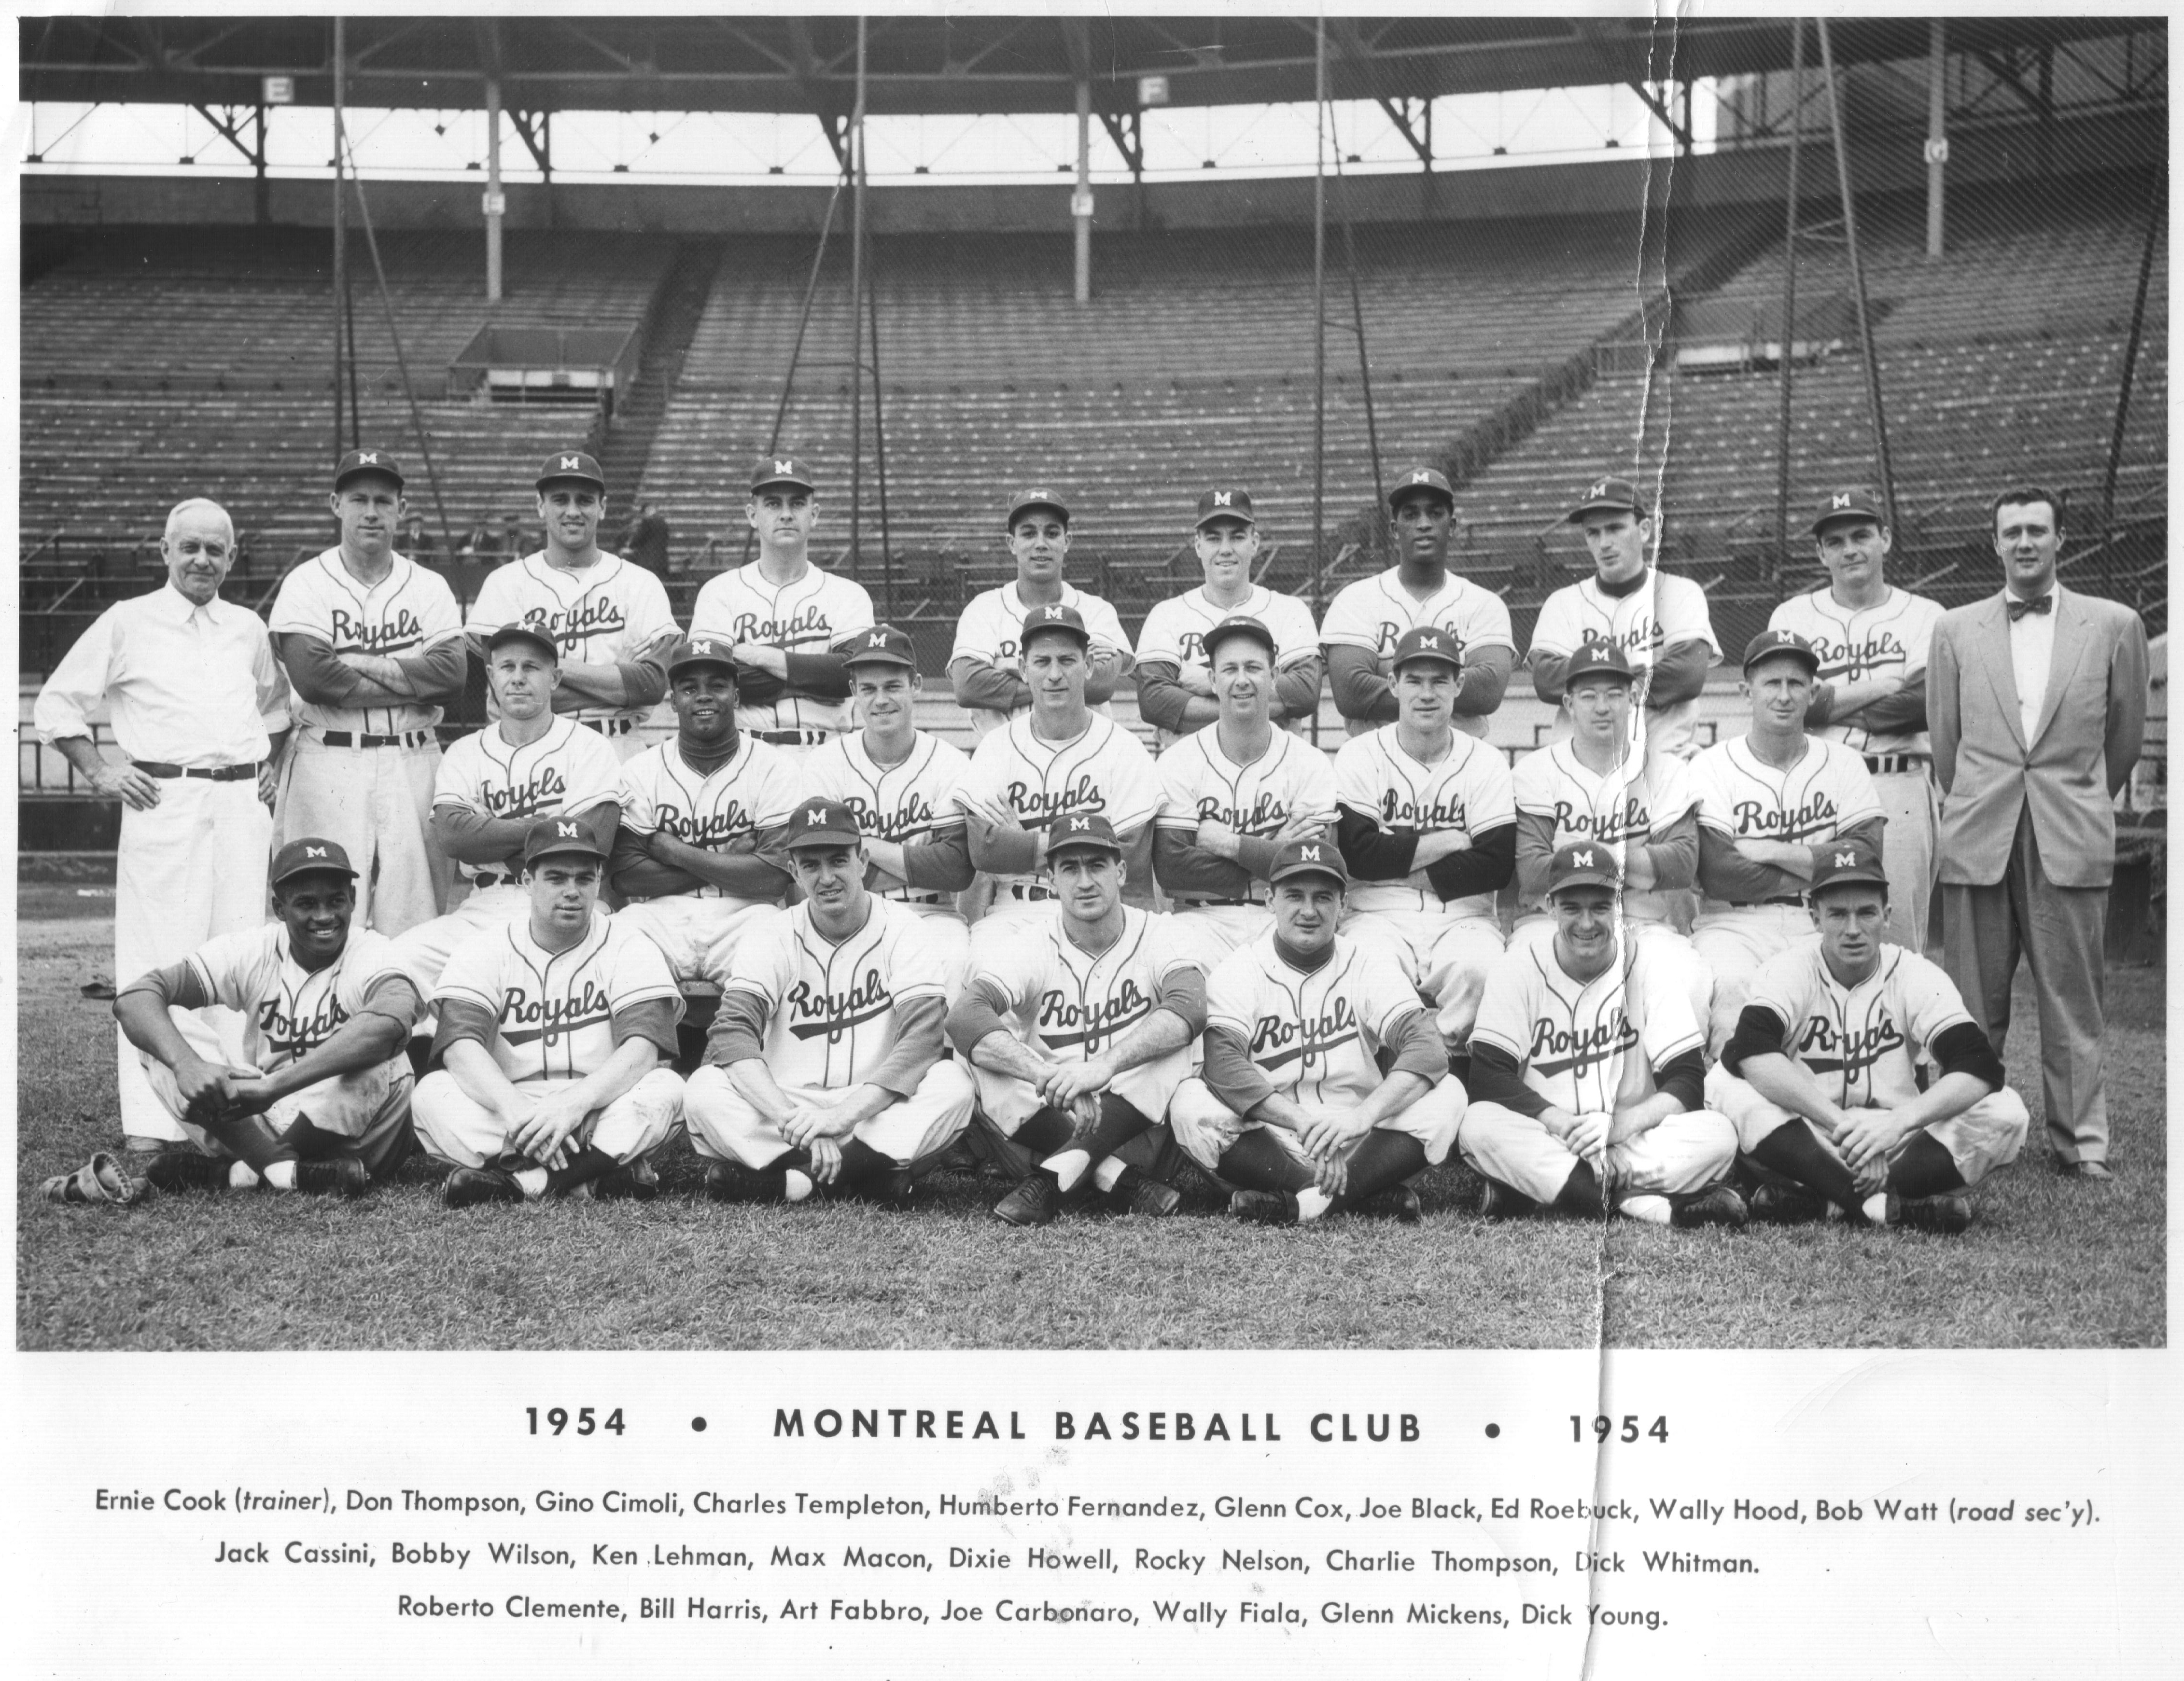 c9418655f Dick Whitman (last player on the right in the middle row) hit .278